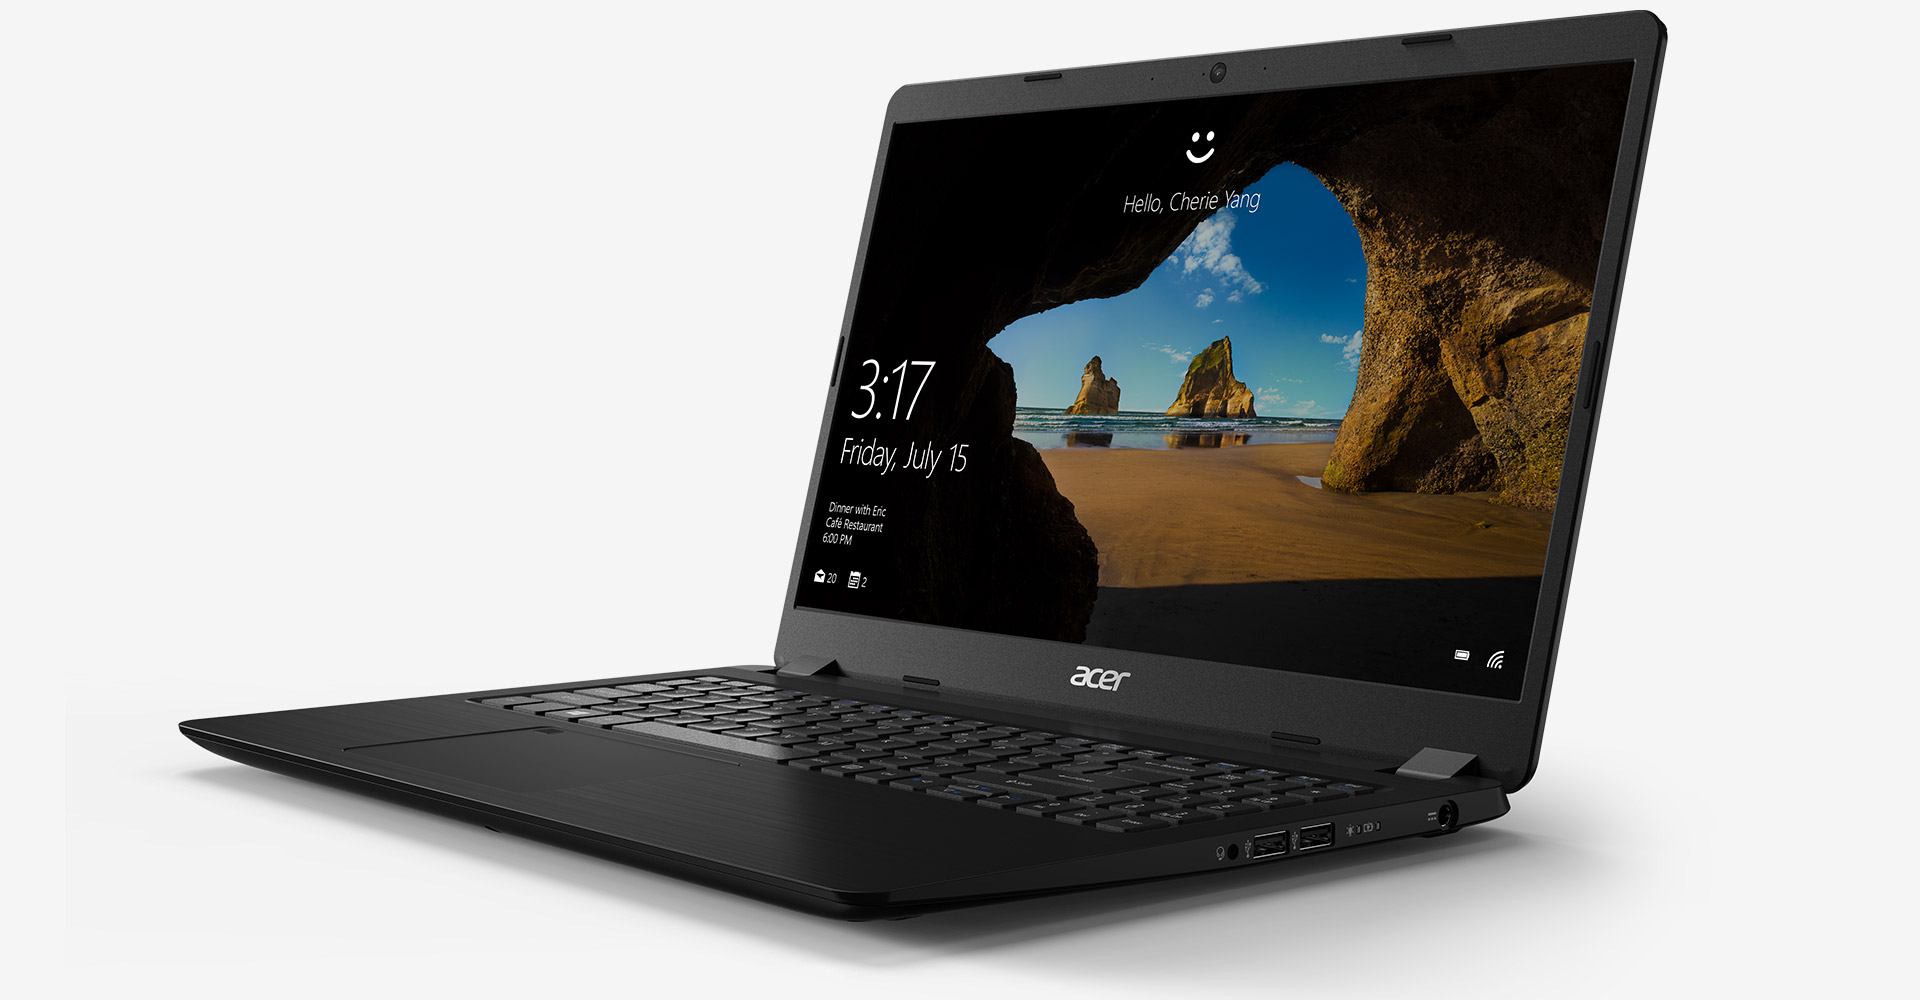 Acer Aspire 5 - A Good $600 Gaming Laptop